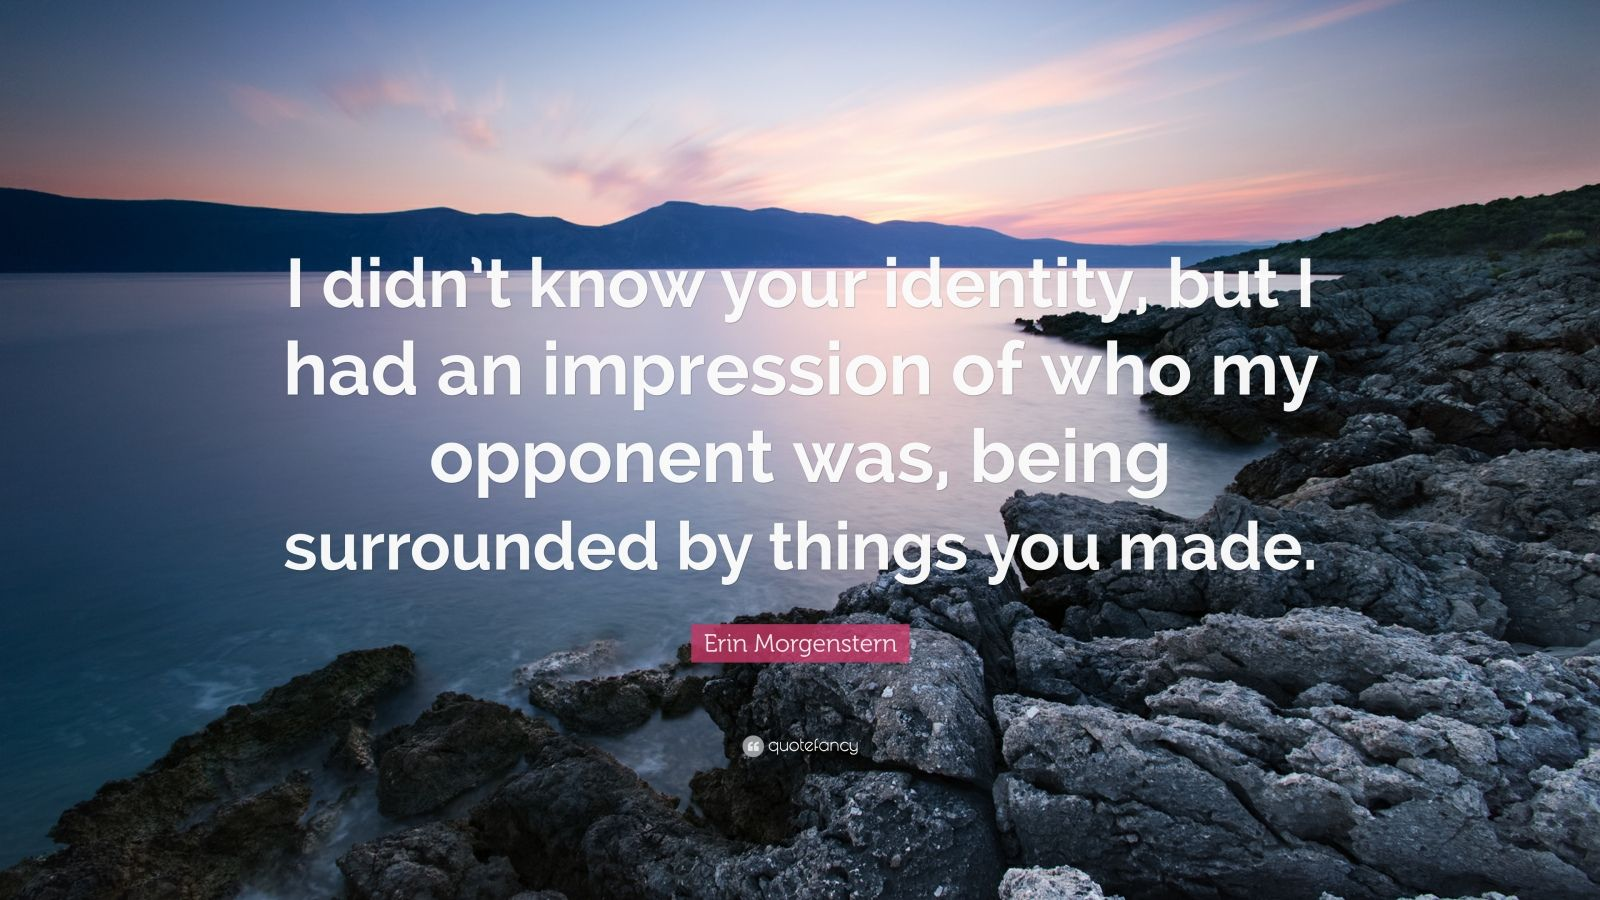 "Erin Morgenstern Quote: ""I didn't know your identity, but I had an impression of who my opponent was, being surrounded by things you made."""